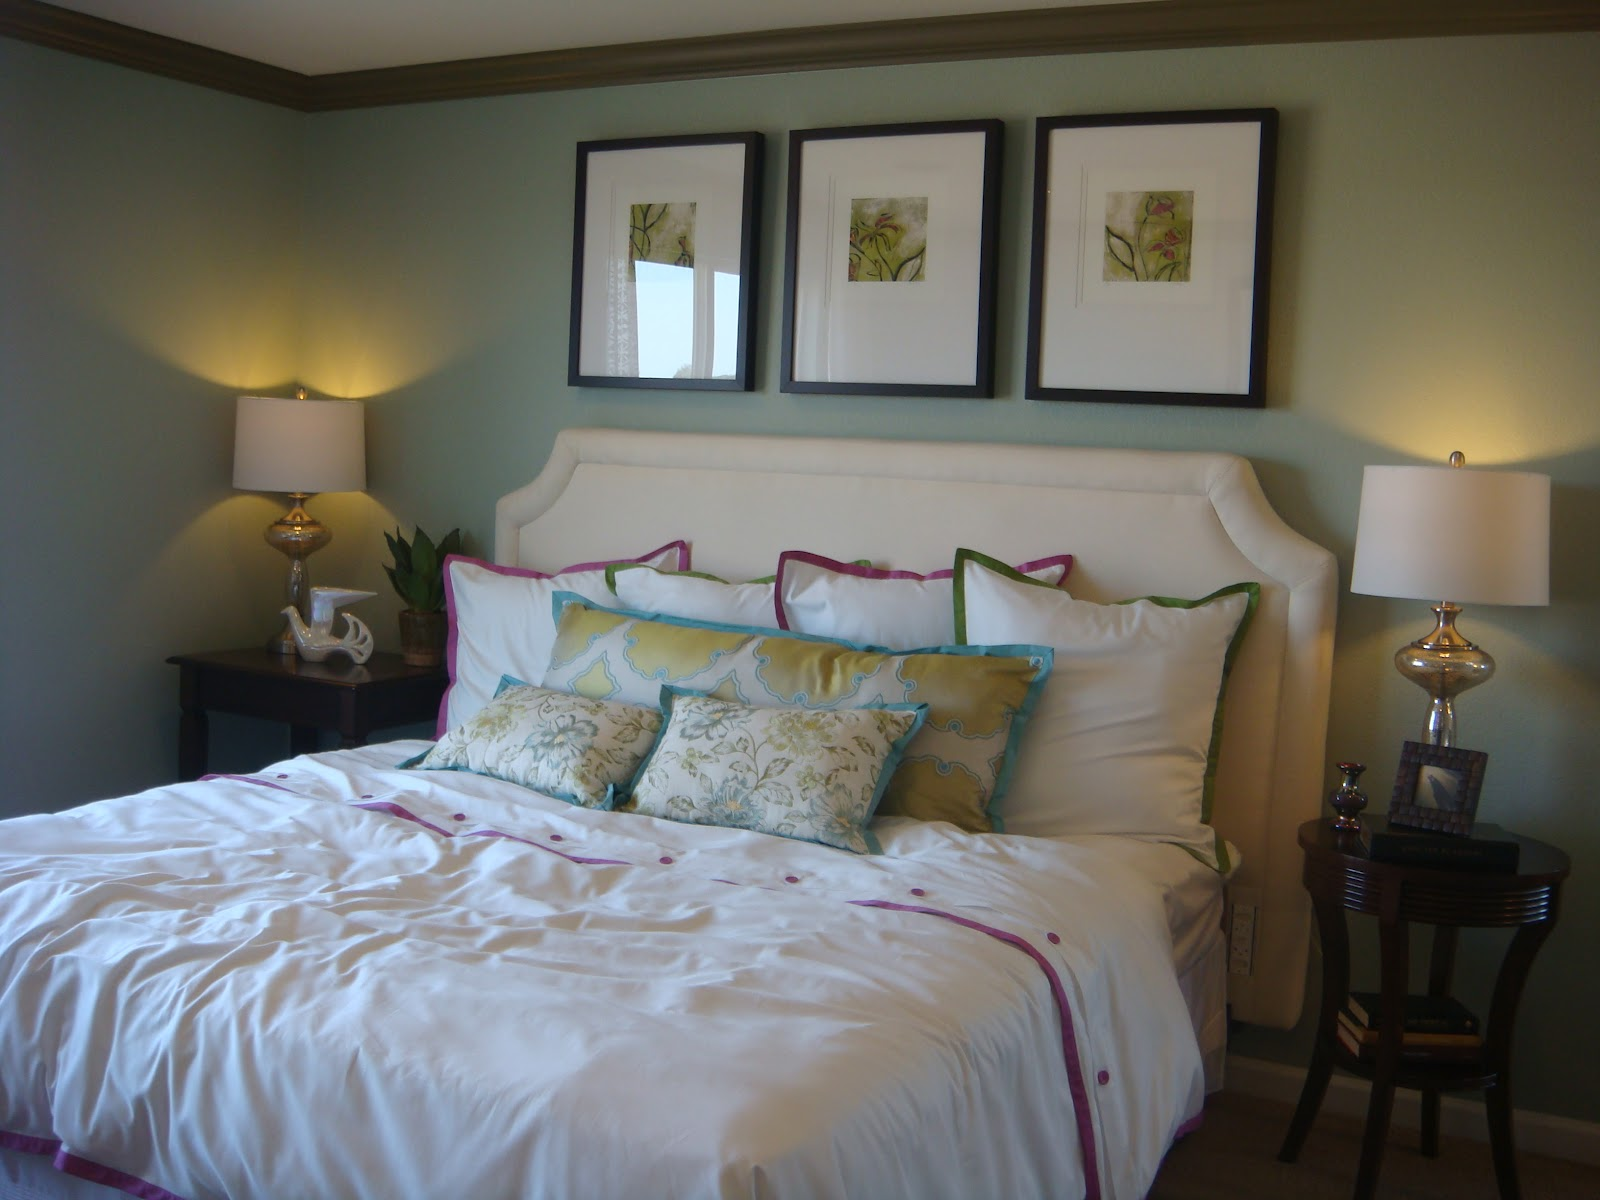 Magenta and lime parade of homes house 1 Master bedroom light blue walls